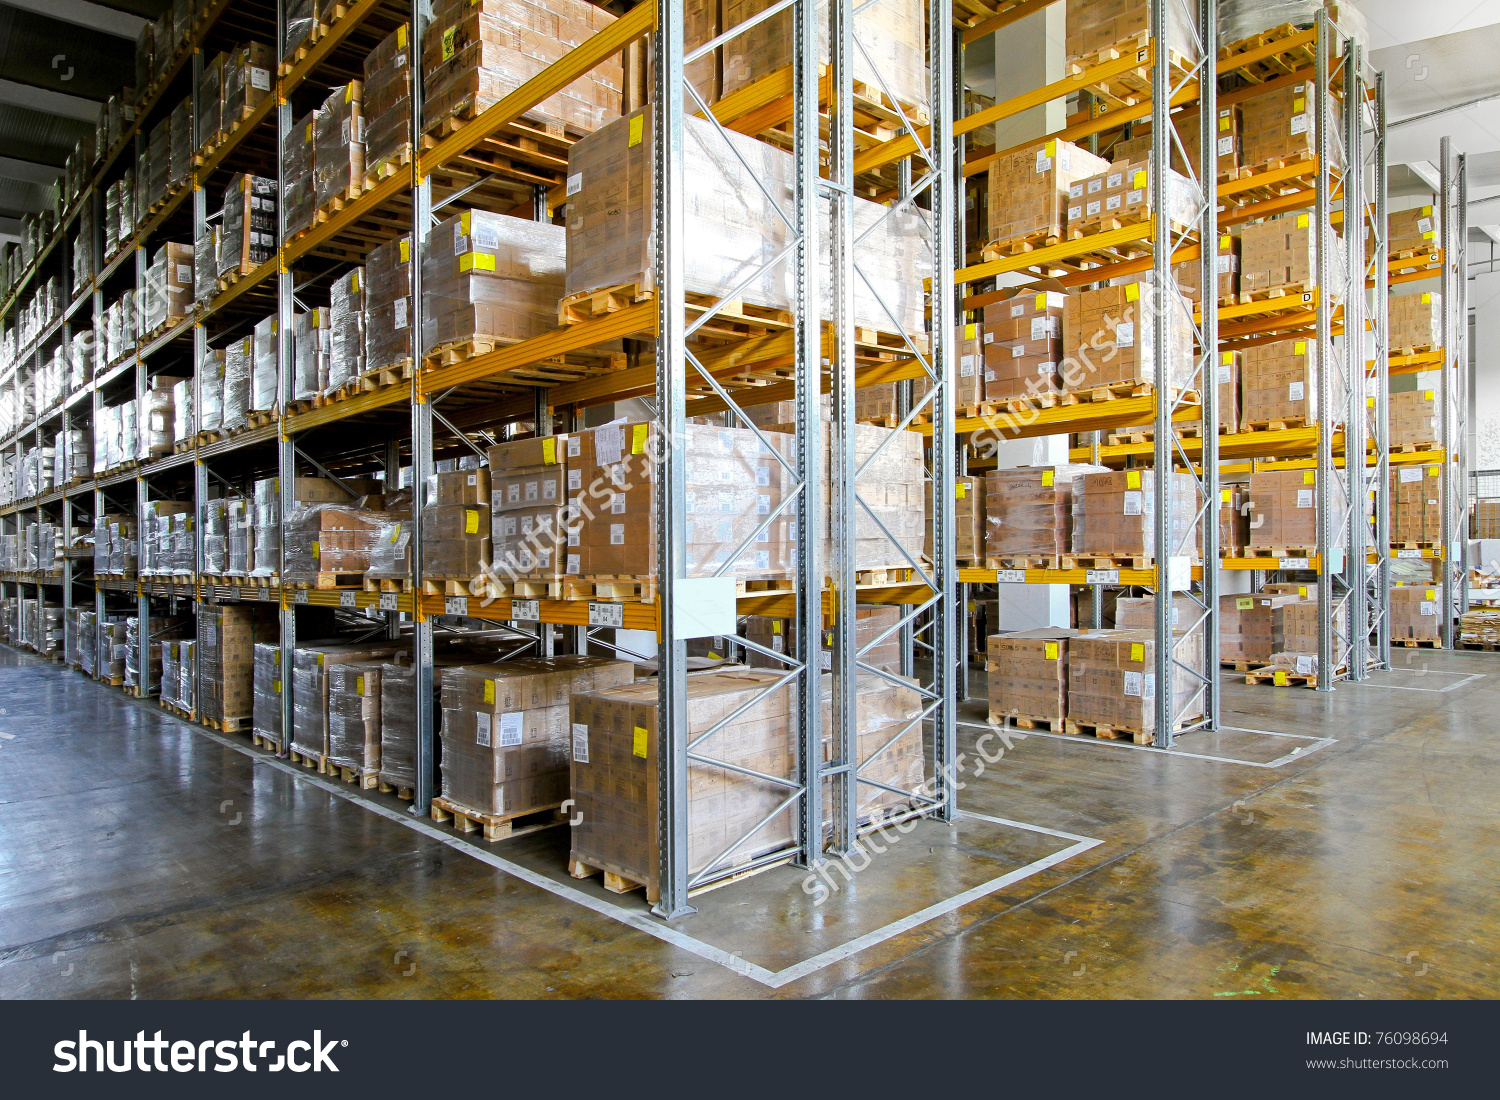 Shelves And Racks In Distribution Storehouse Interior Stock Photo.